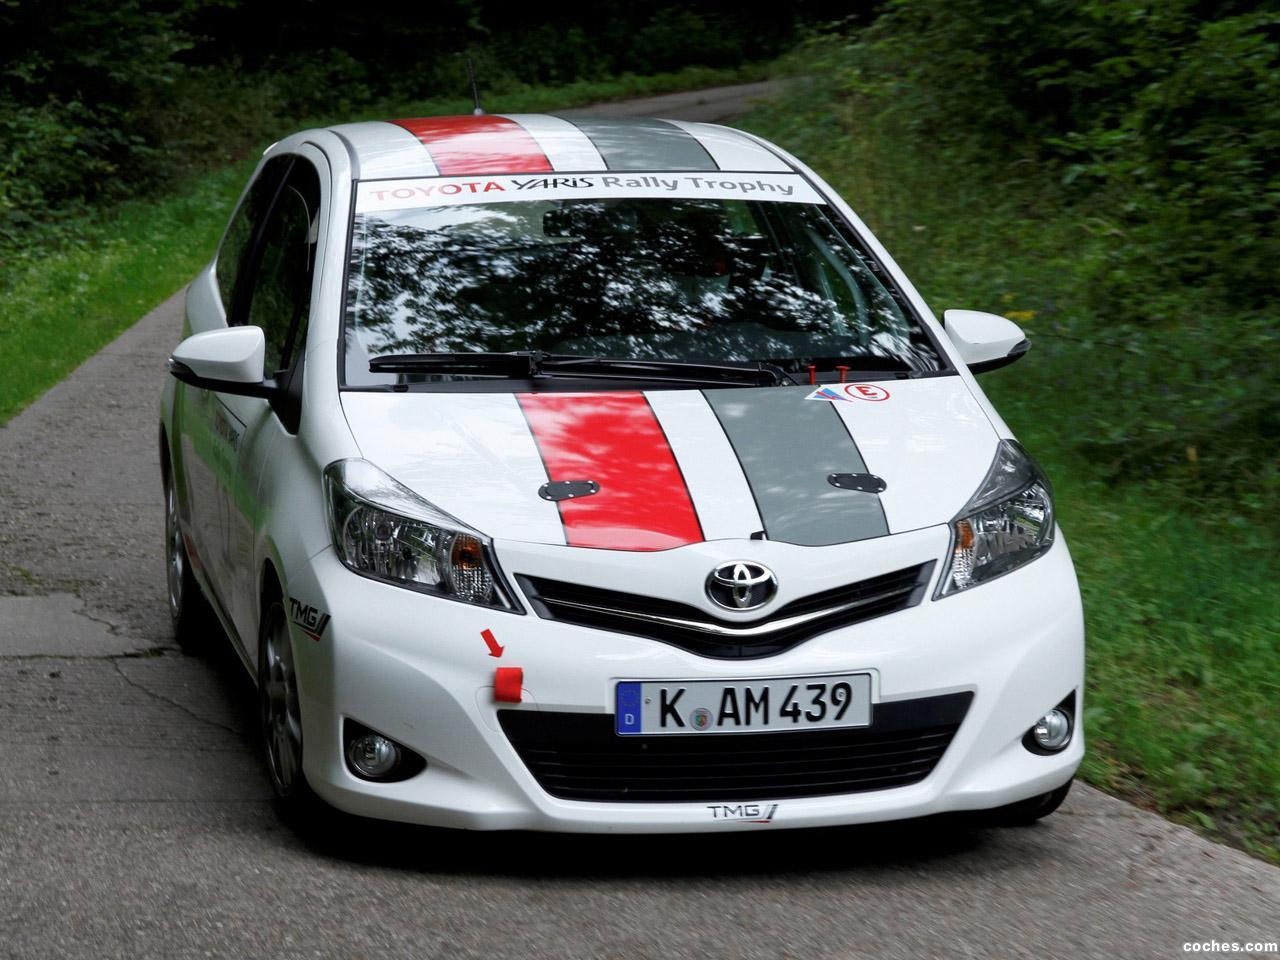 Foto 0 de Toyota Yaris R1A TMG Rally Car 2012